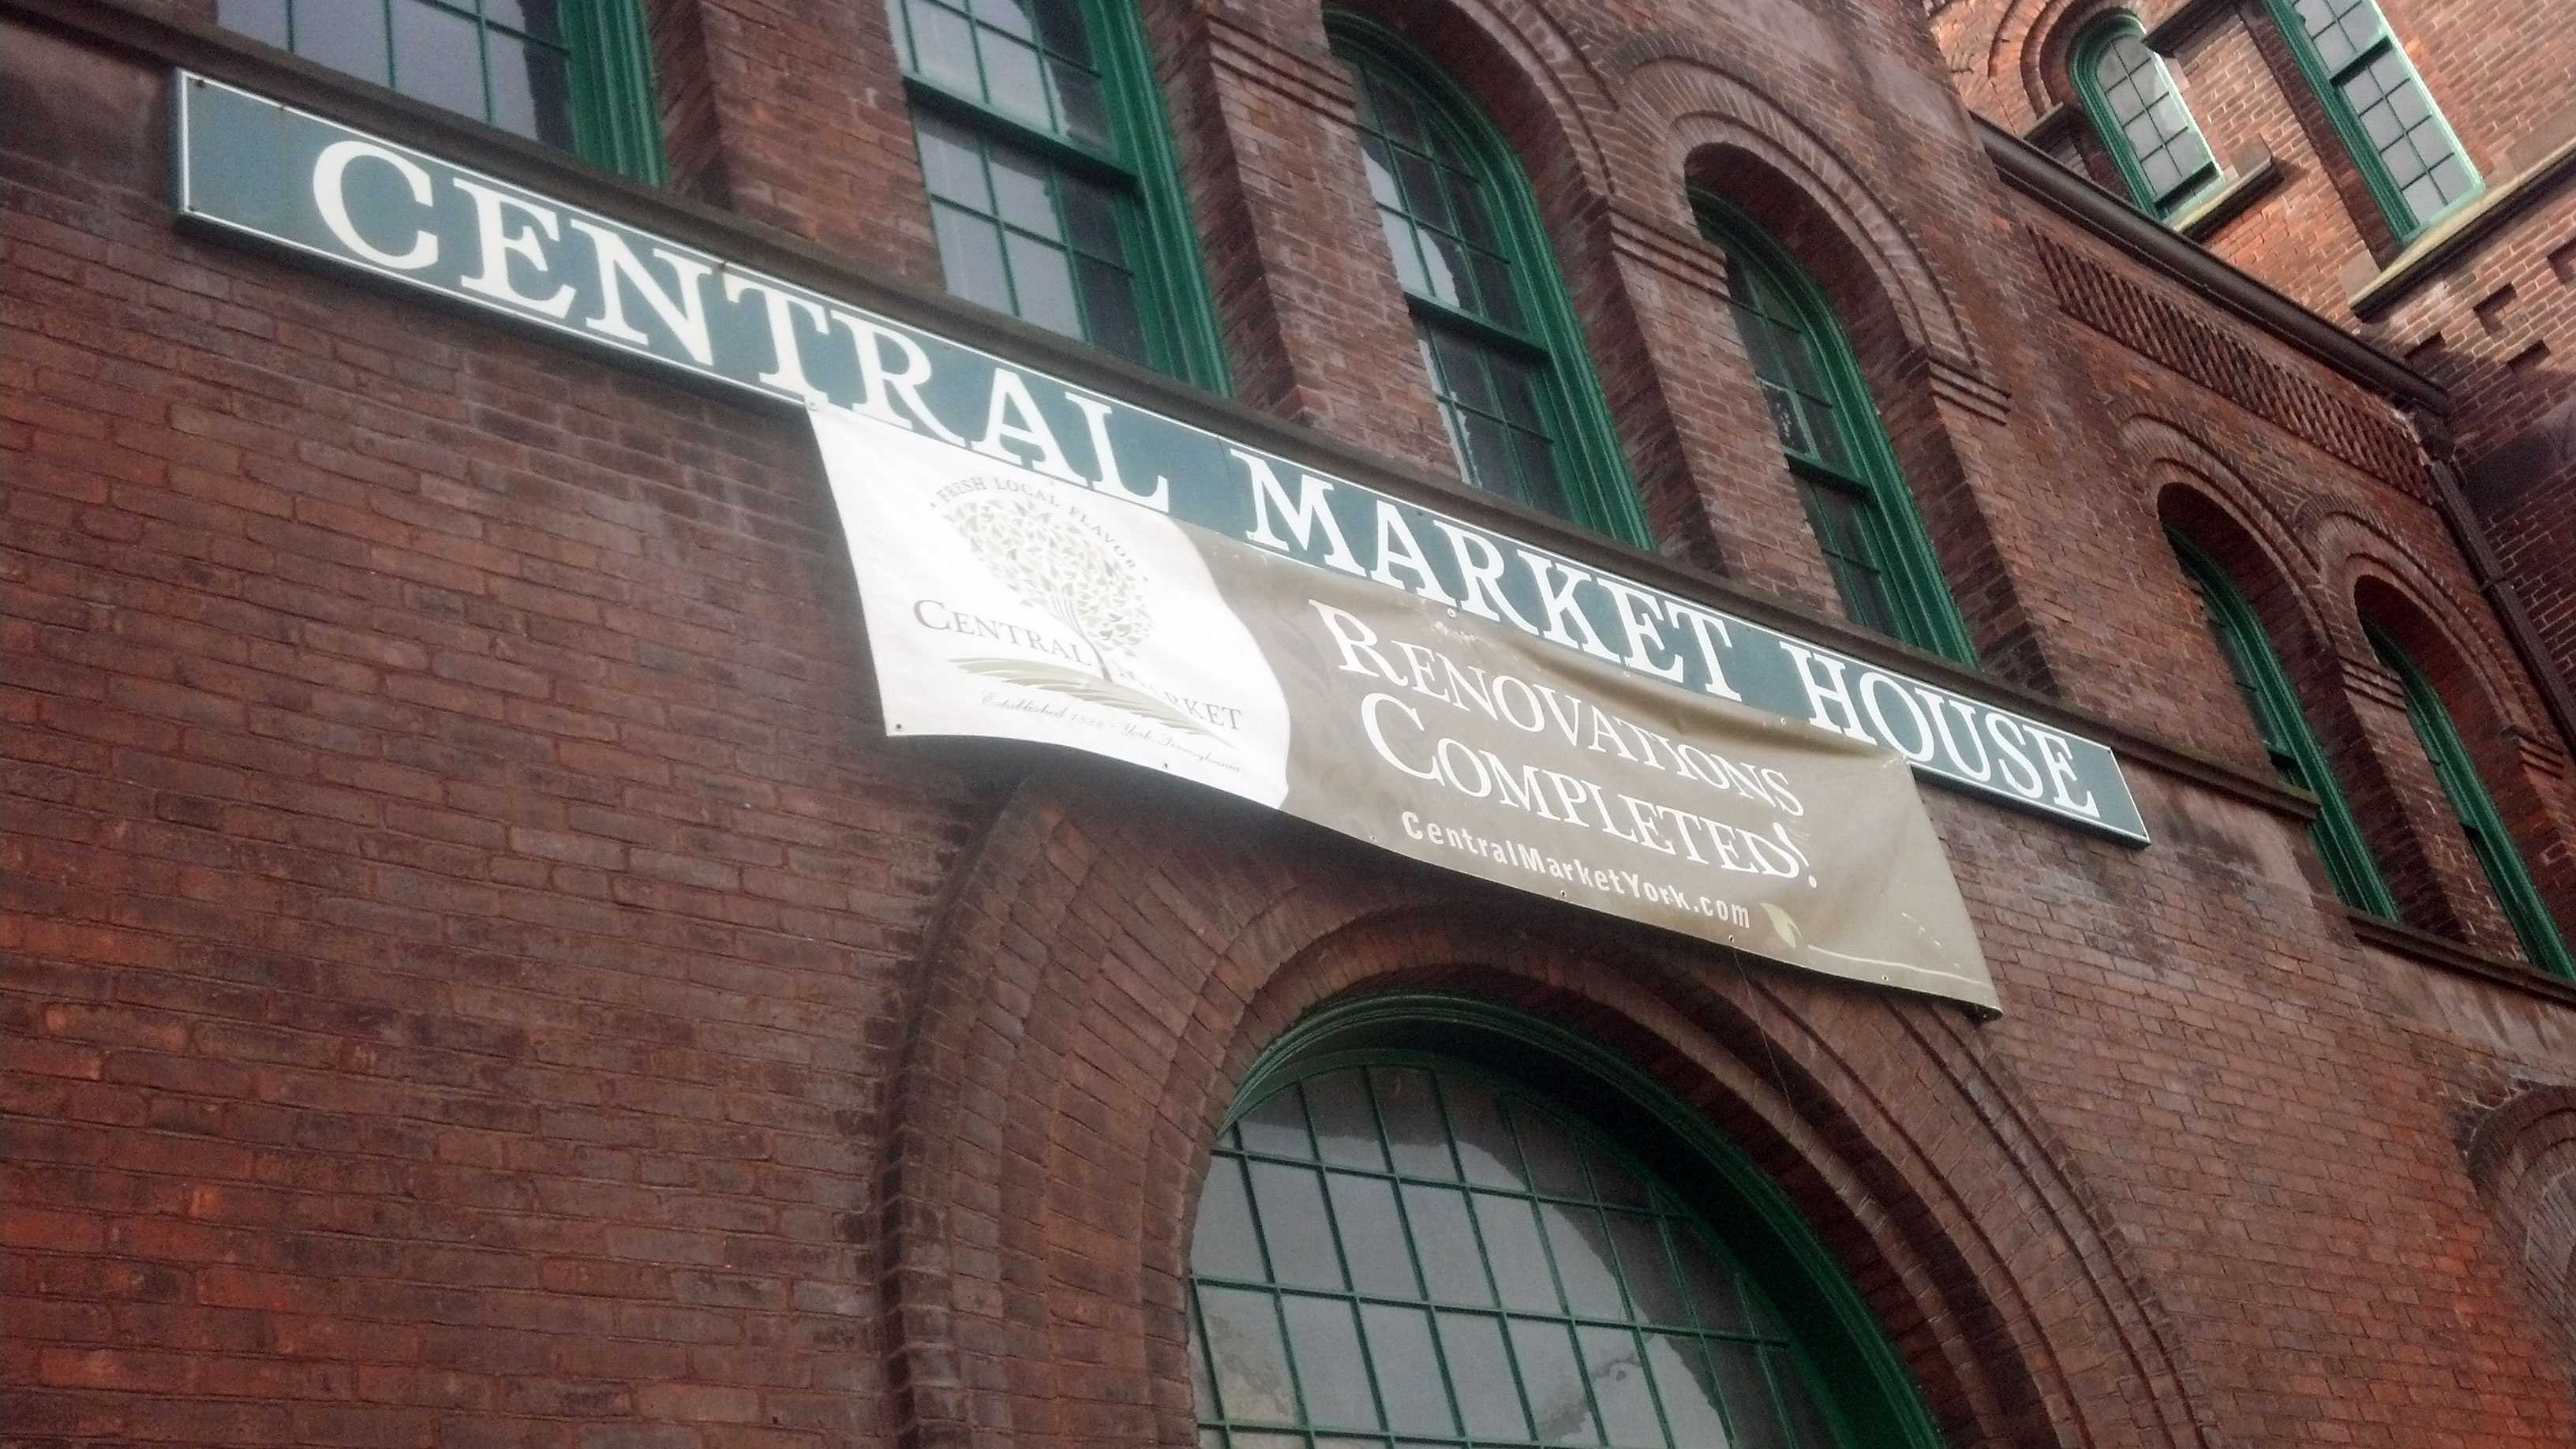 York's Central Market is celebrating its 125th anniversary.